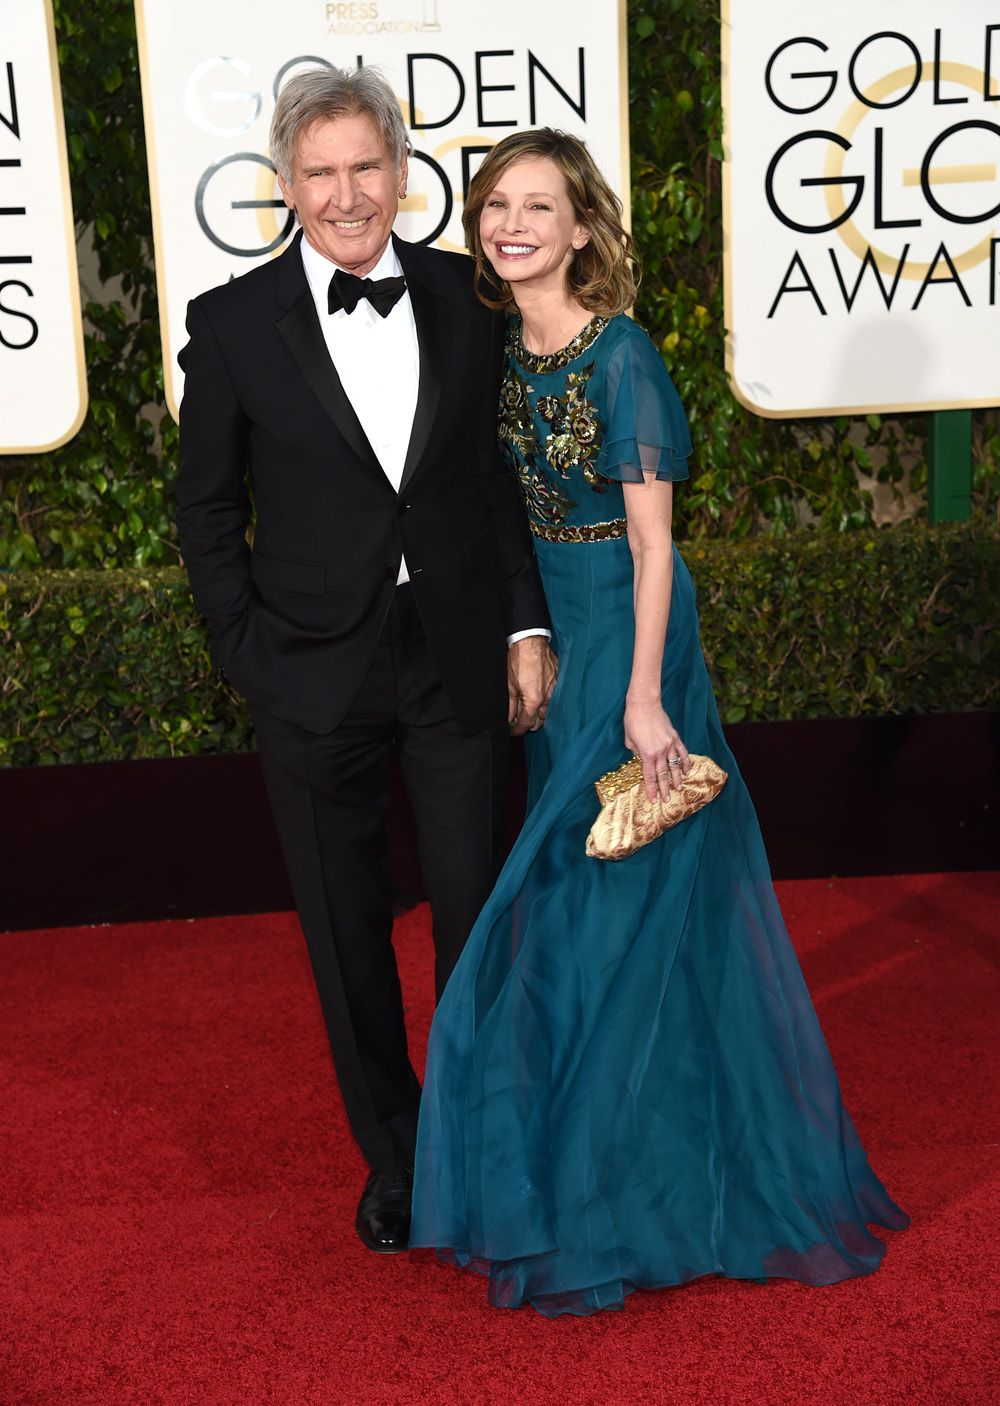 Golden Globes 2016 See All The Red Carpet Pics En 2020 Con